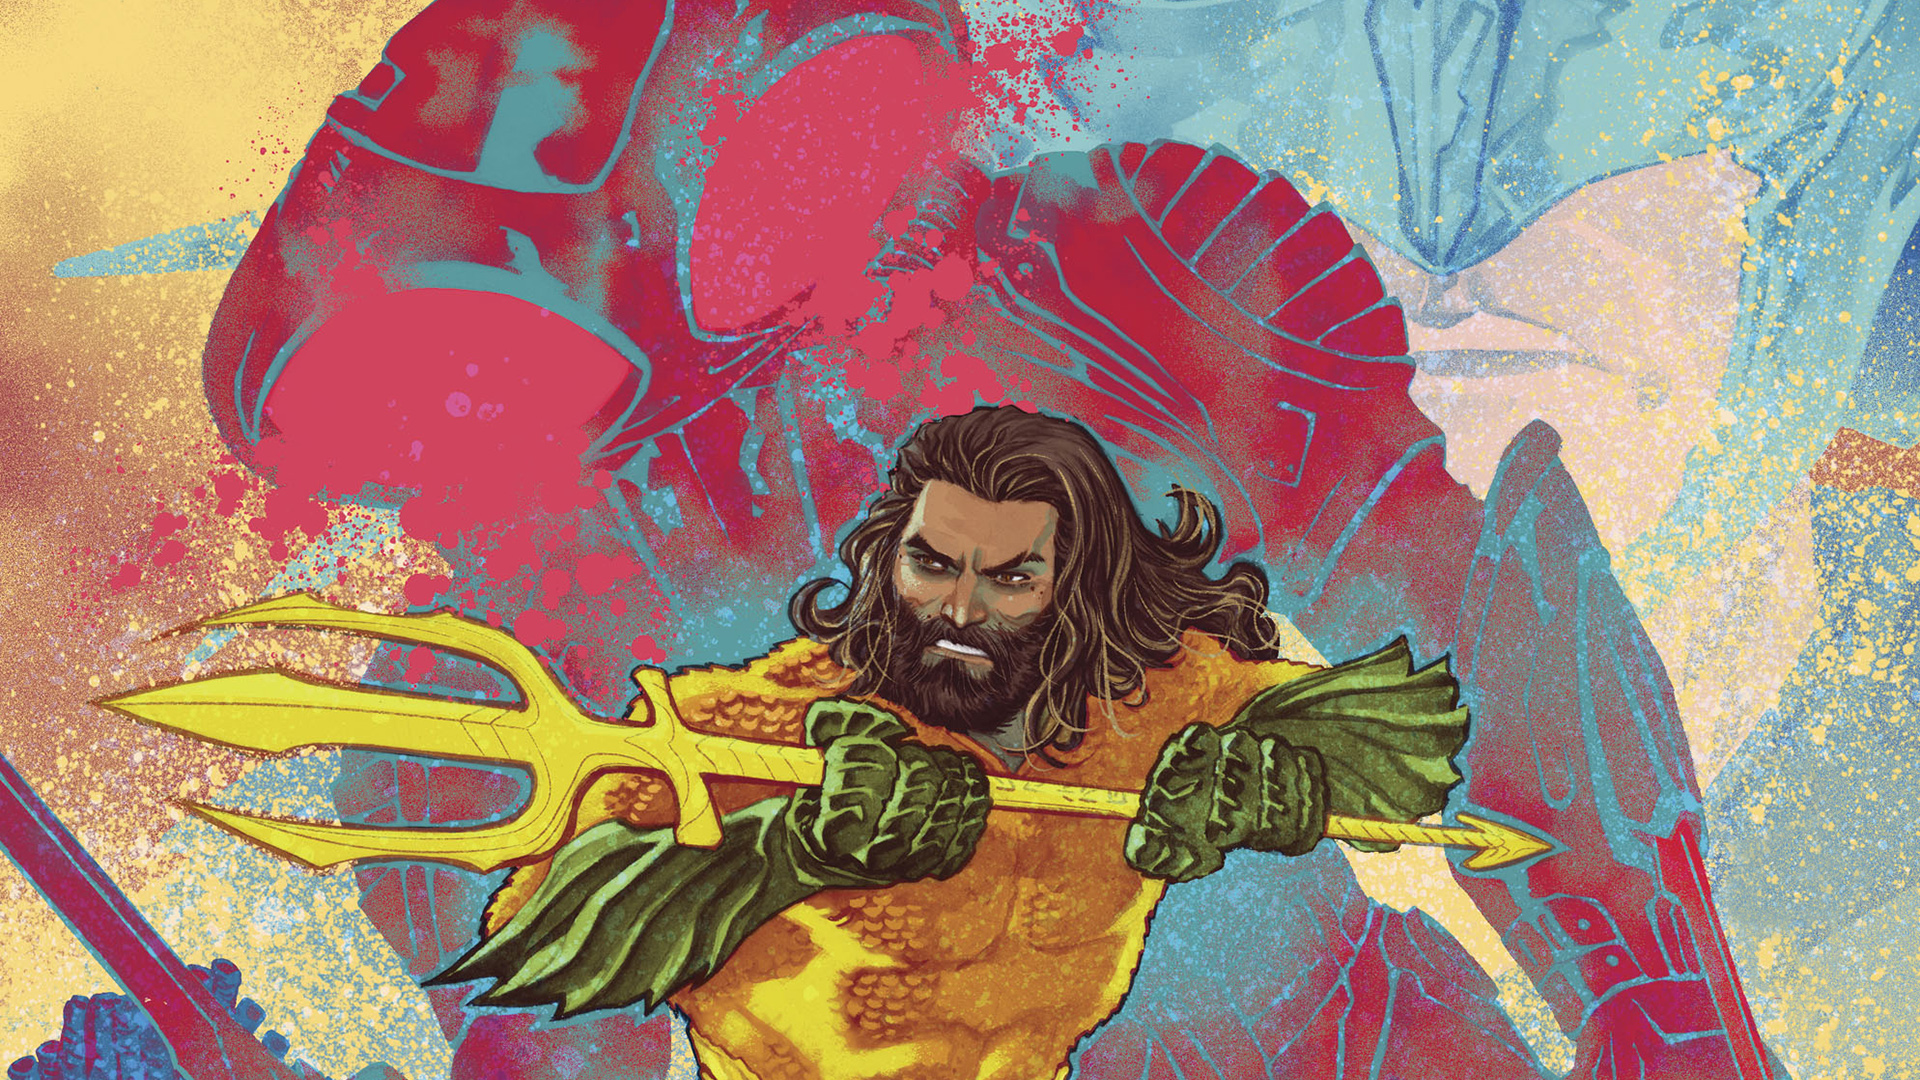 Aquaman being zapped by Black Manta.jpg